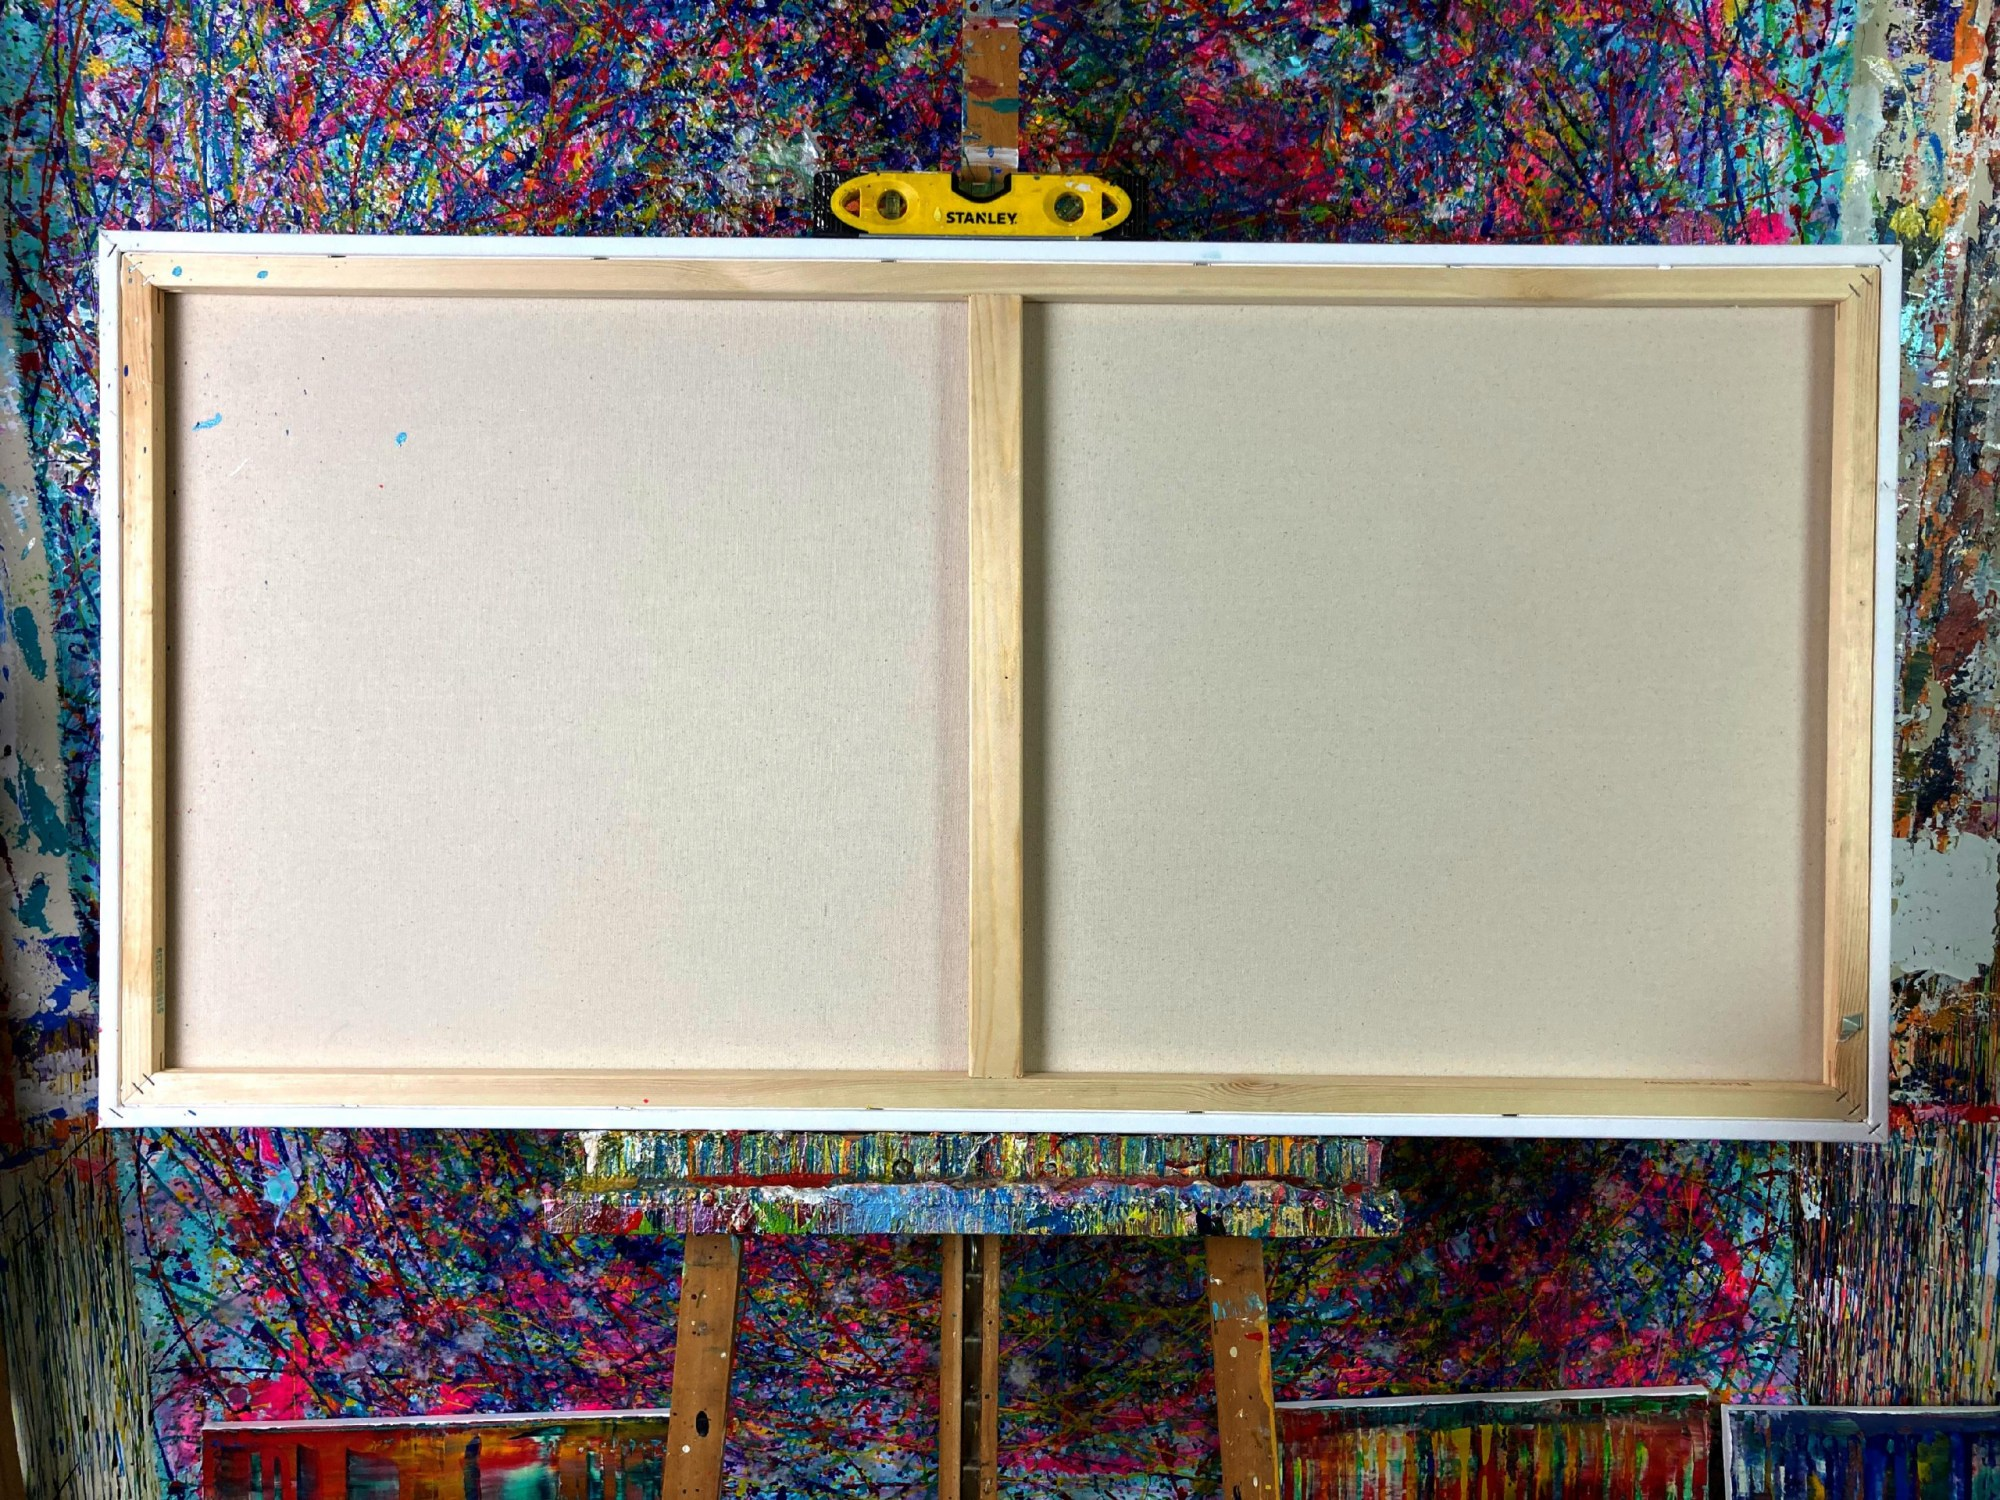 BACK VIEW / Autumn Motion (2021) - Ready to Hang - 48x24 inches